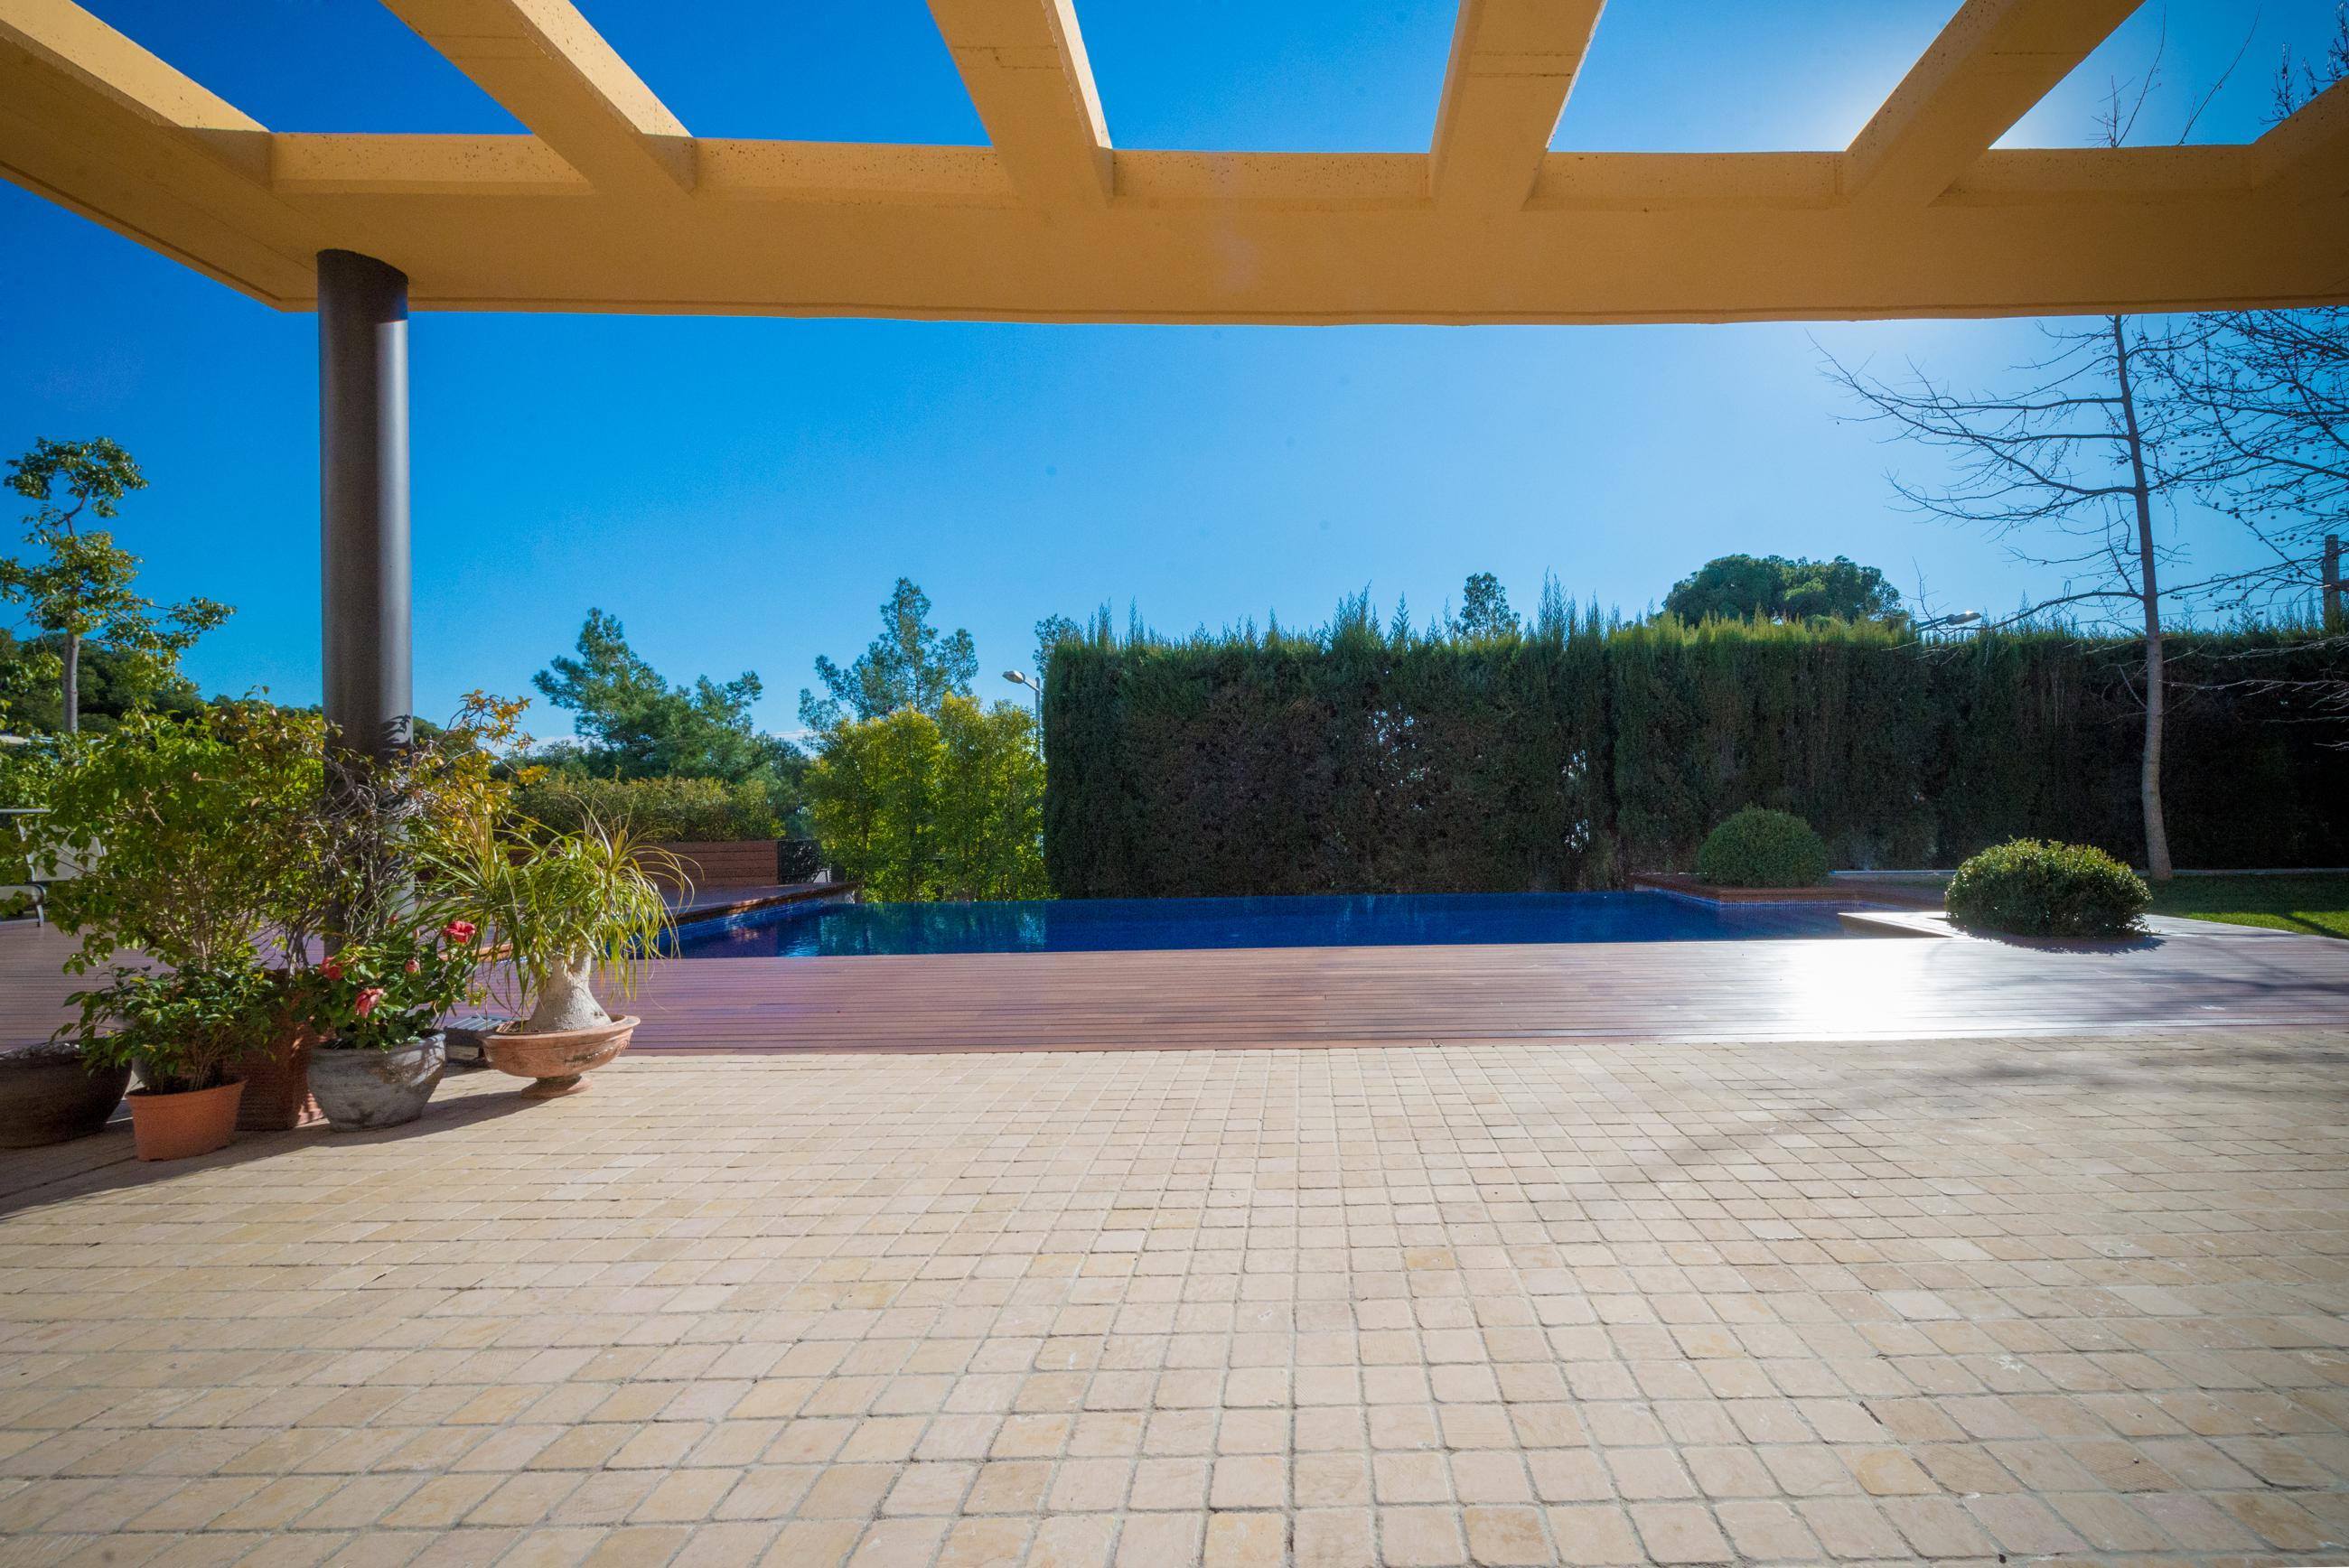 251384 Detached House for sale in Les Corts, Pedralbes 3